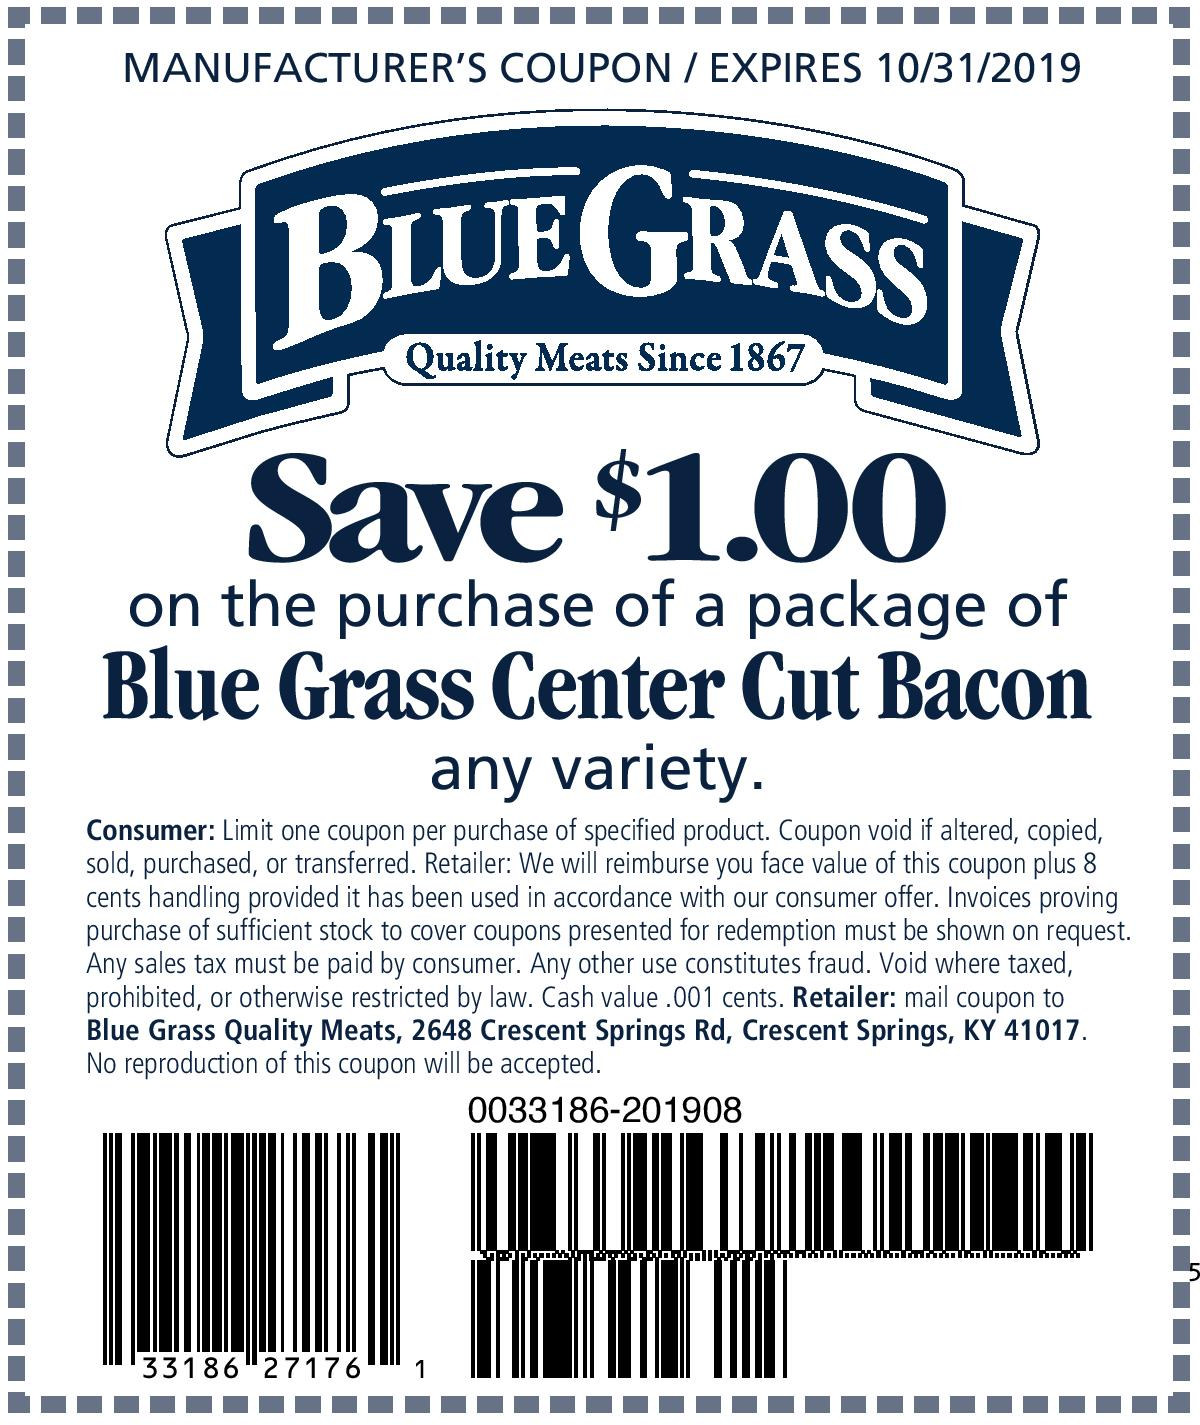 Save $1.00 on the purchase of a package of Blue Grass Center Cut Bacon any variety.